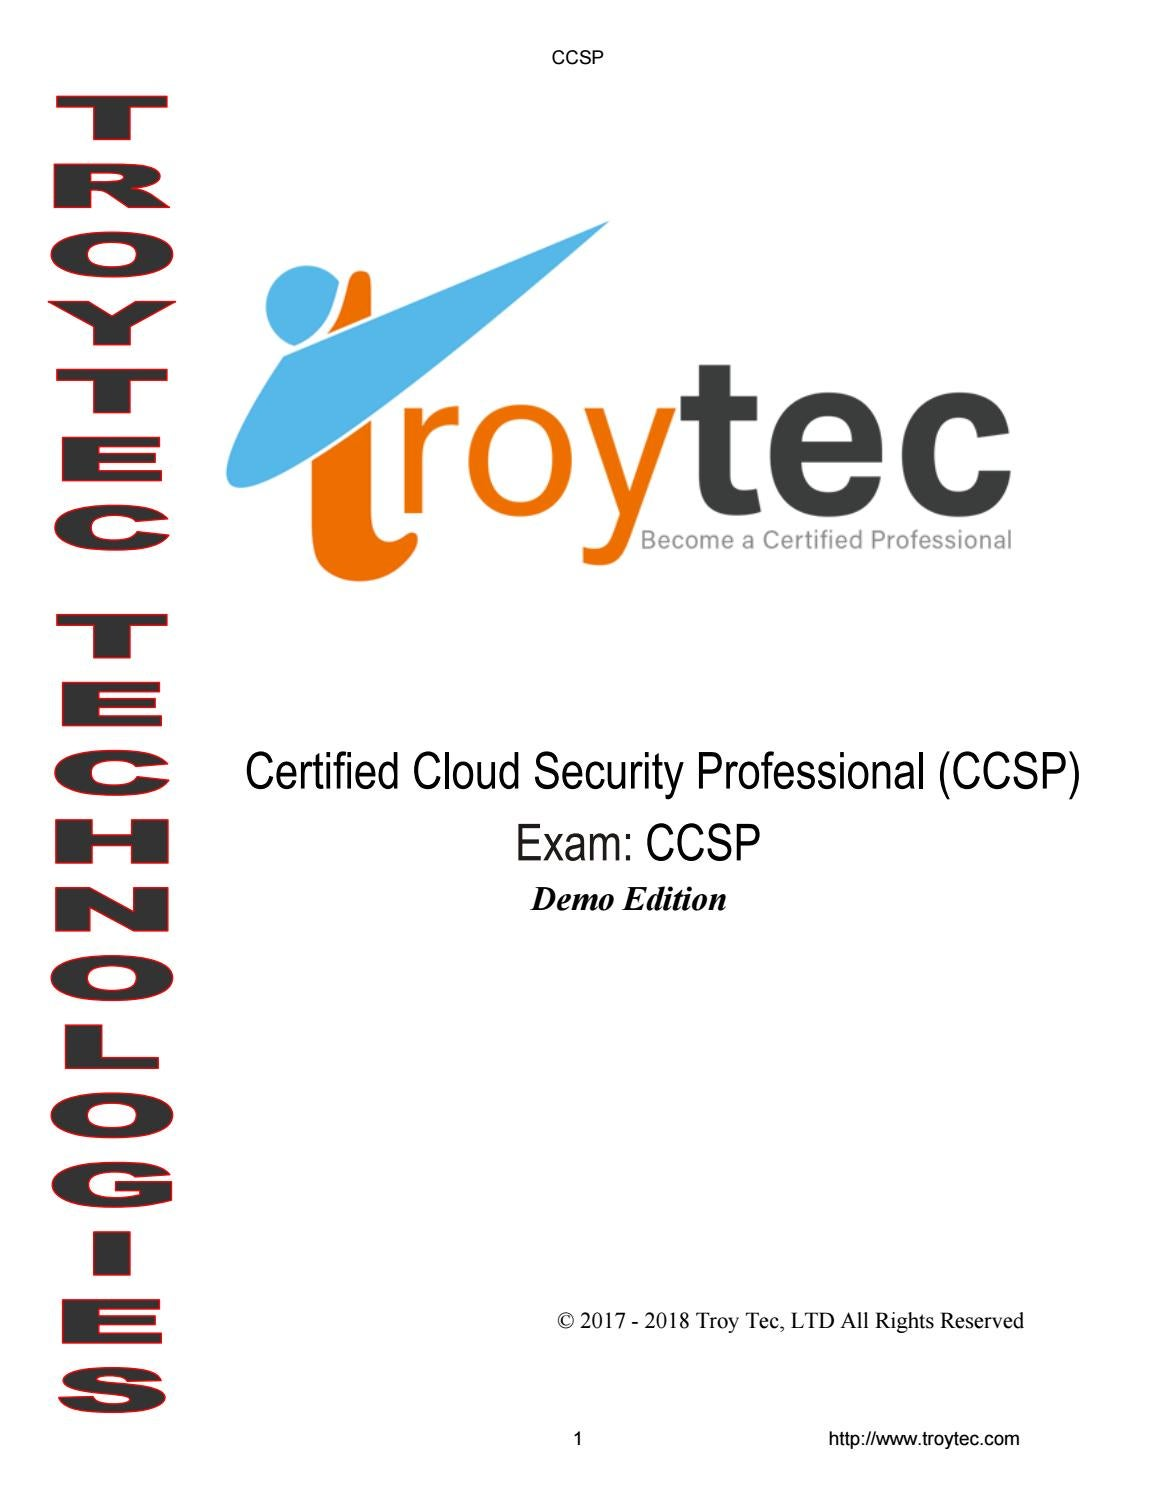 CCSP Exam-Certified Cloud Security Professional (CCSP) by